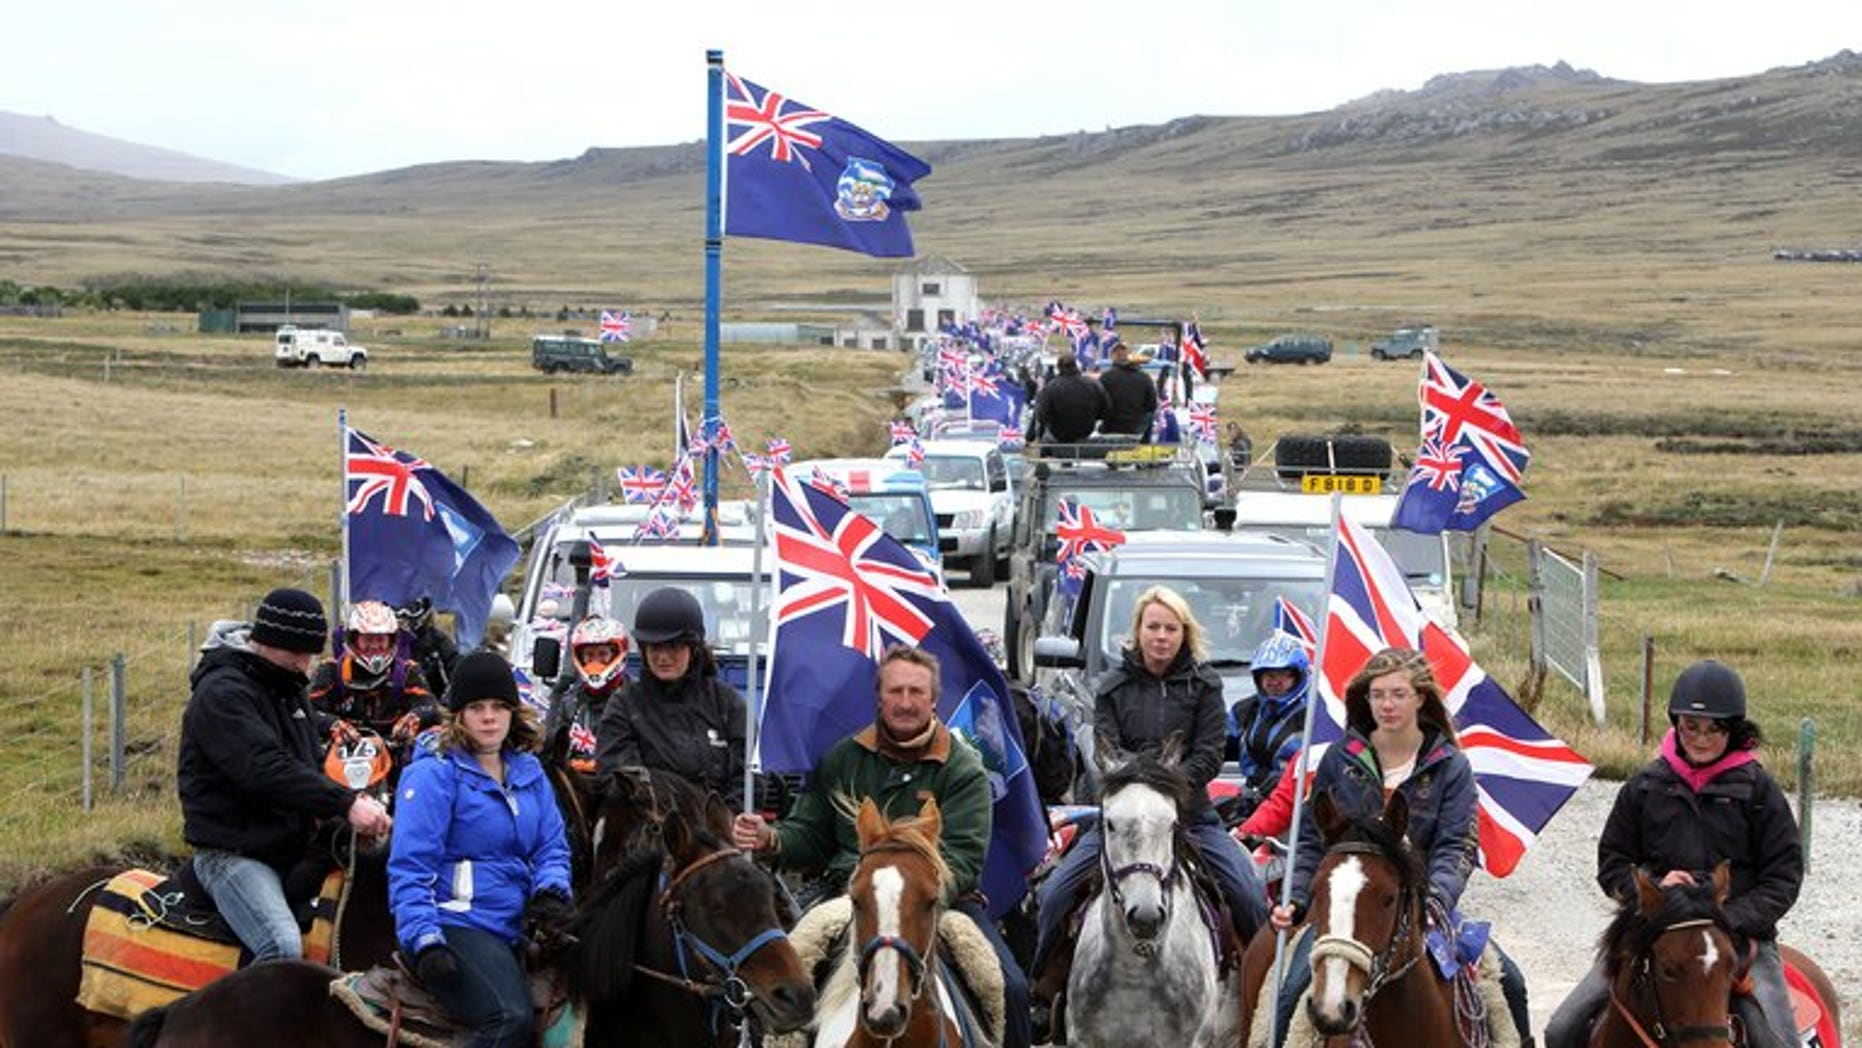 """Islanders take part in the """"Proud to be British"""" parade along Ross Road in Port Stanley, Falkland (Malvinas for Argentina) Islands, on March 10, 2013. Sandy Woodward, who commanded the British navy task force that retook the Falkland Islands in the 1982 war with Argentina, has died aged 81, the defence ministry confirmed."""